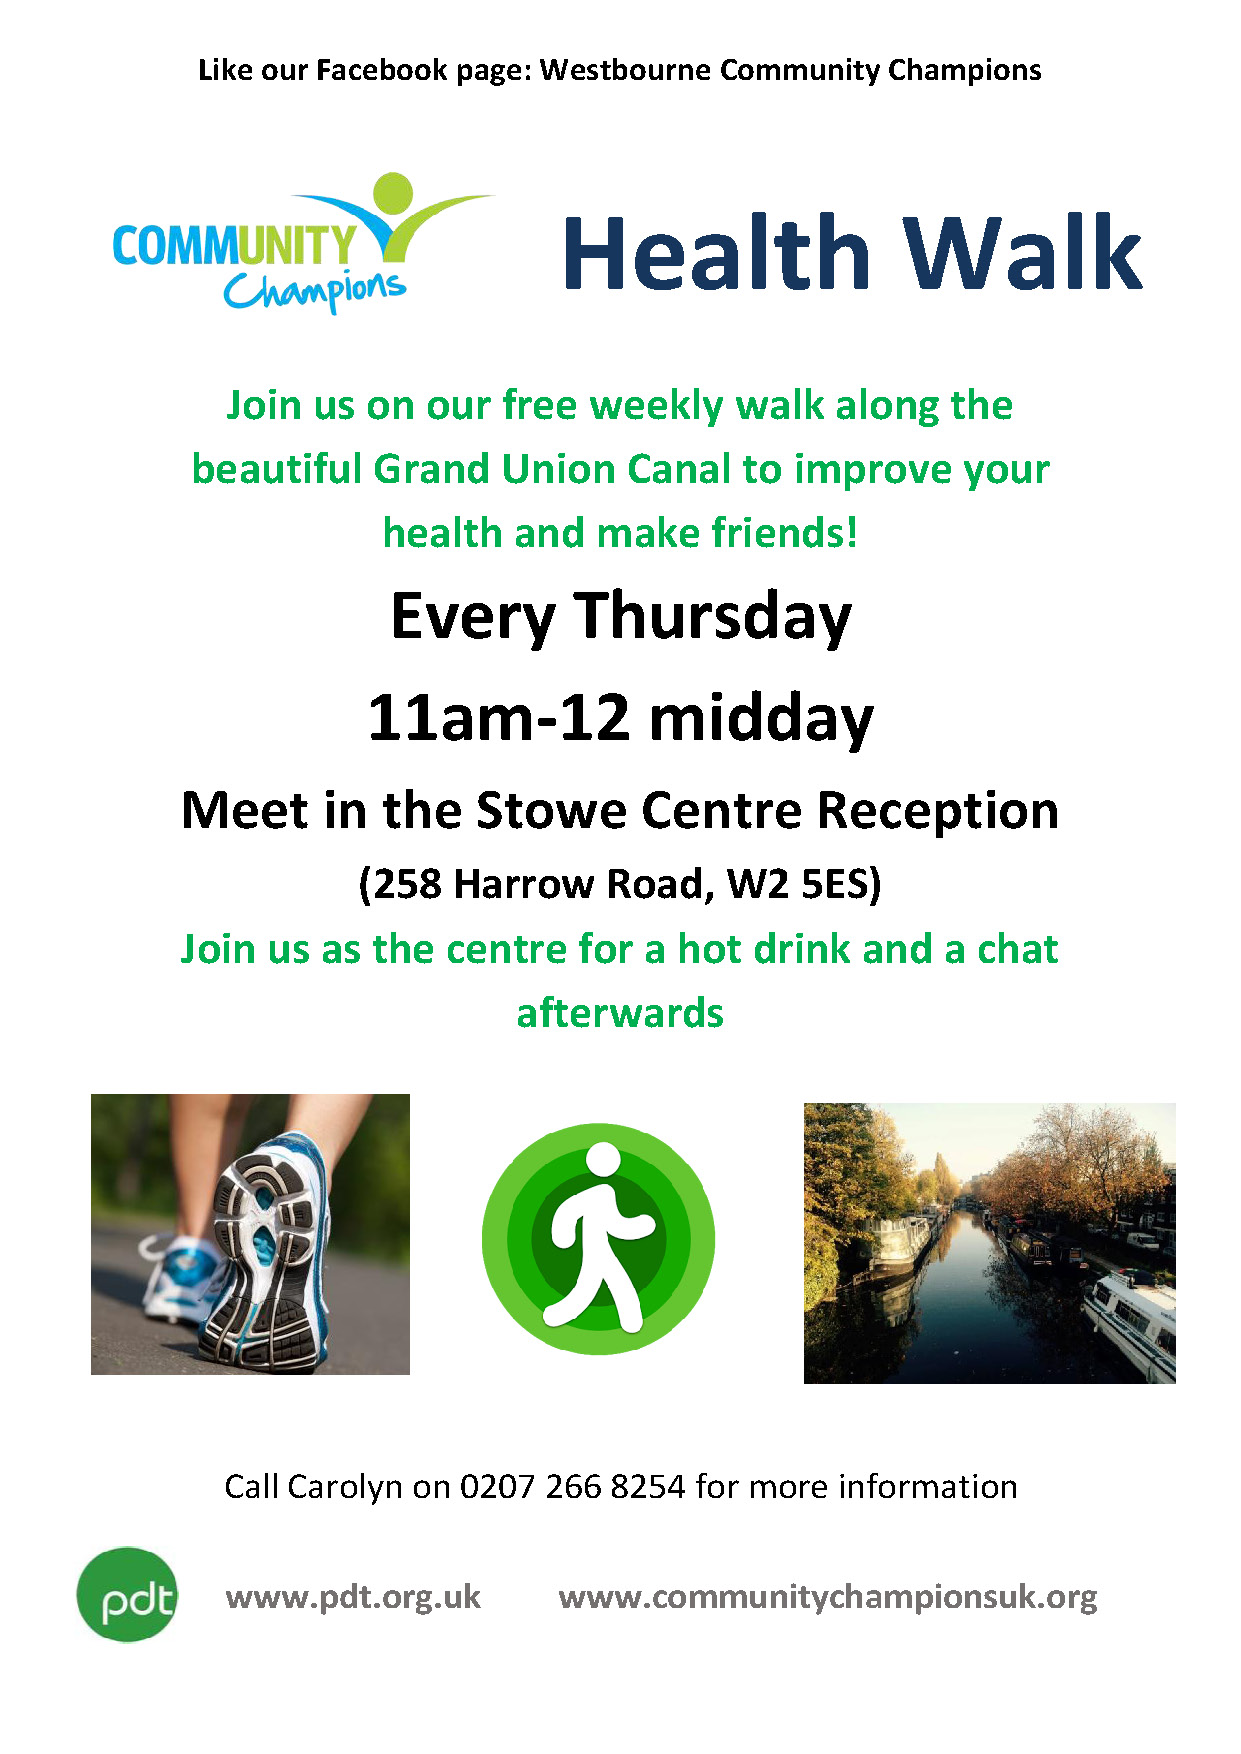 Health Walks with the Community Champions. Every Thursday 10 am to 12 midday. Meet at the Stowe. Call Carolyn on 020 7266 8254 for more information.